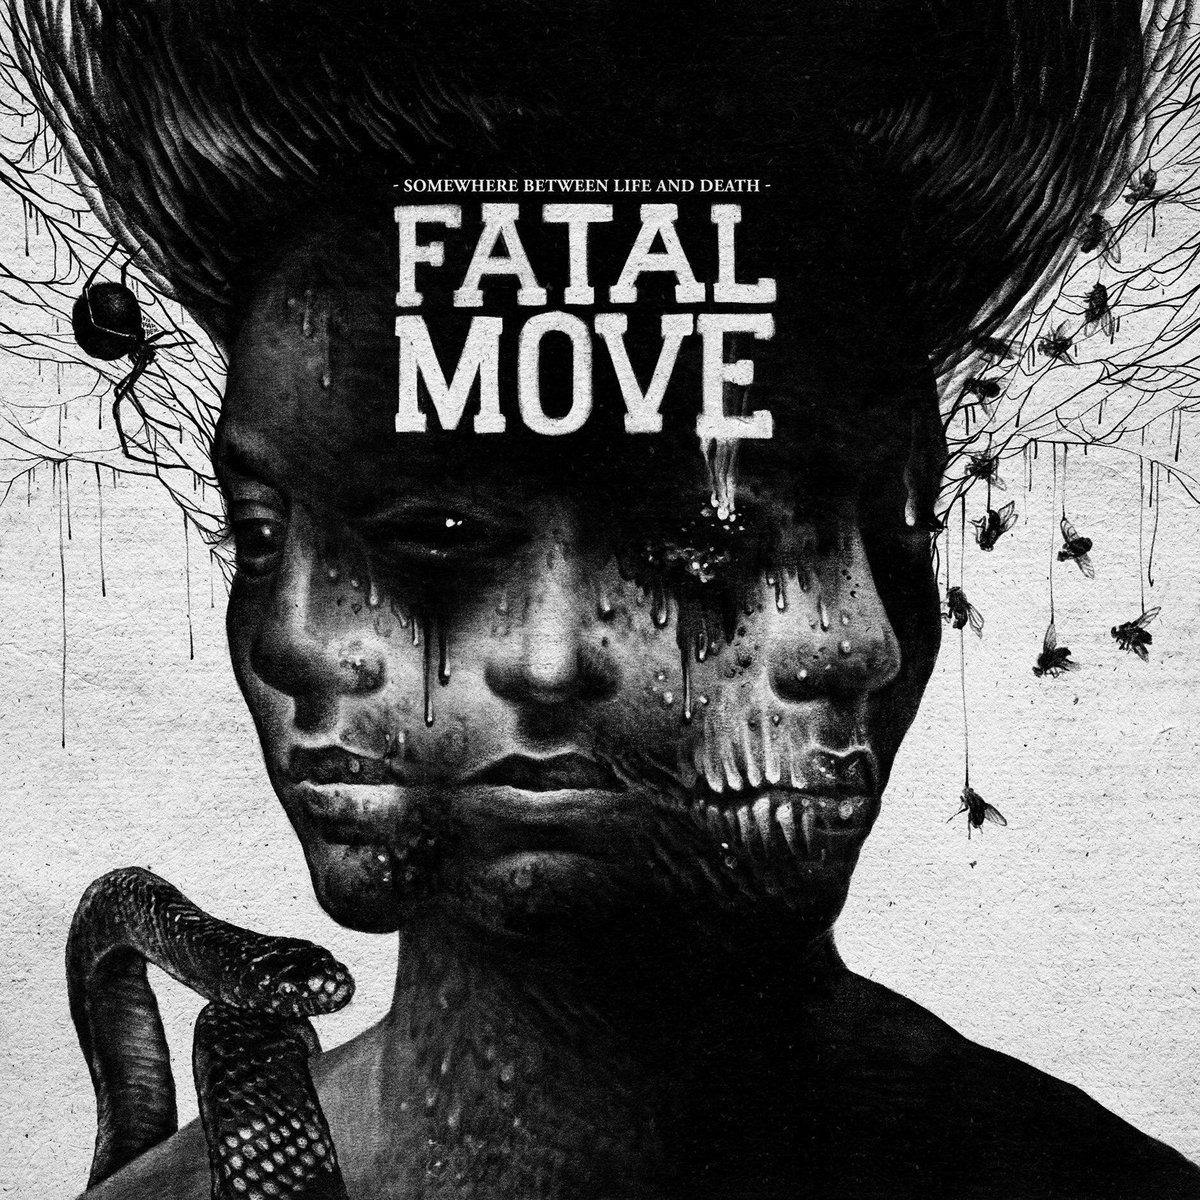 fatal move somewhere between life and death